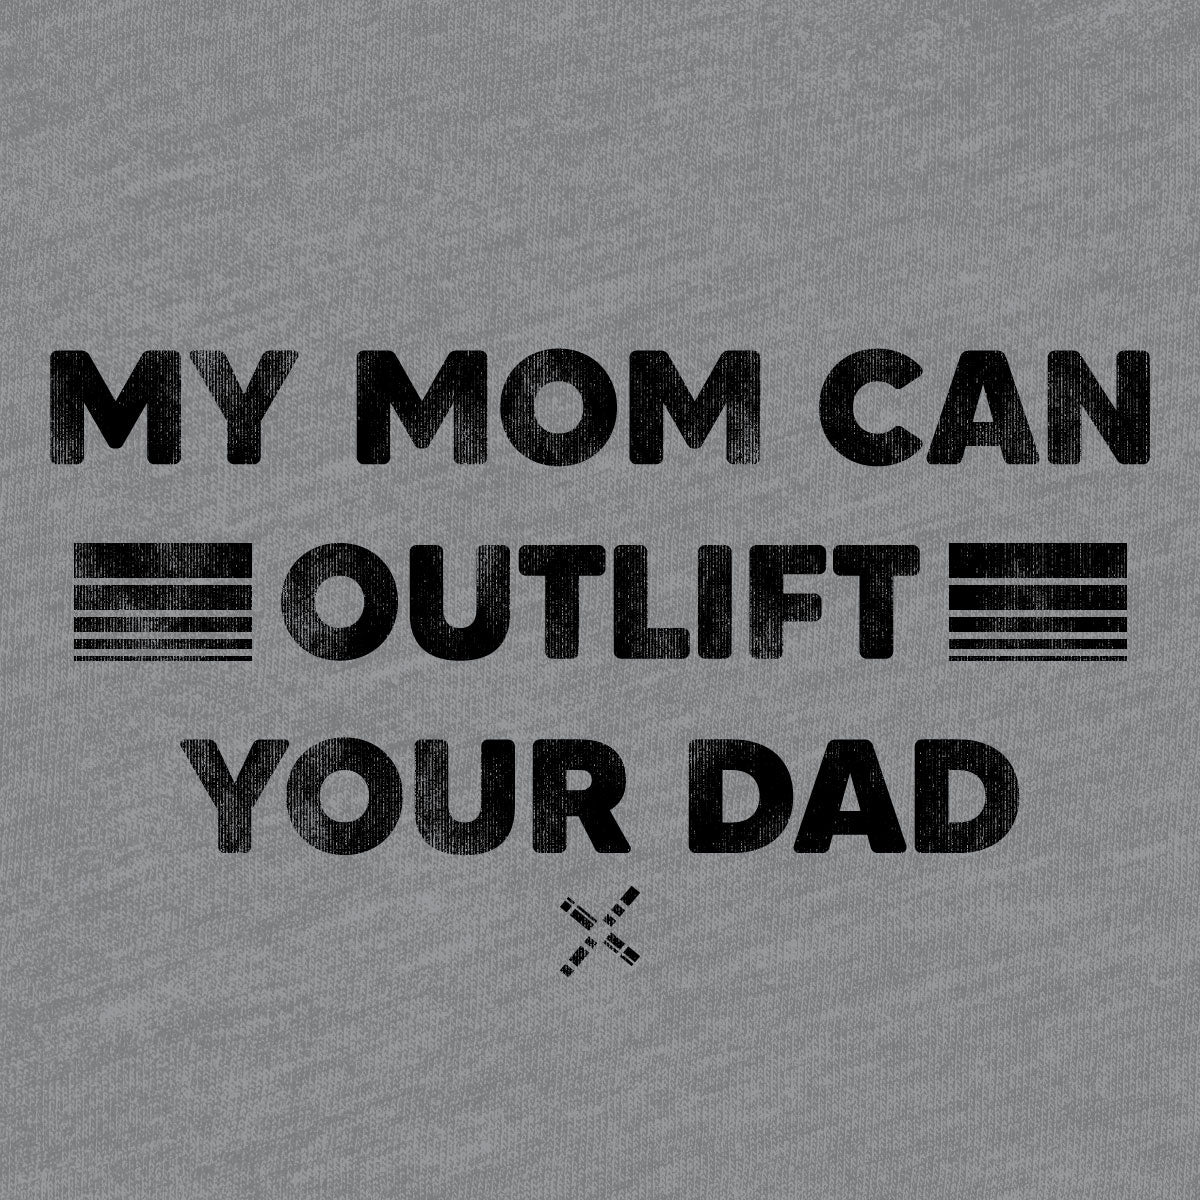 My Mom Can Outlift Your Dad Youth Tee